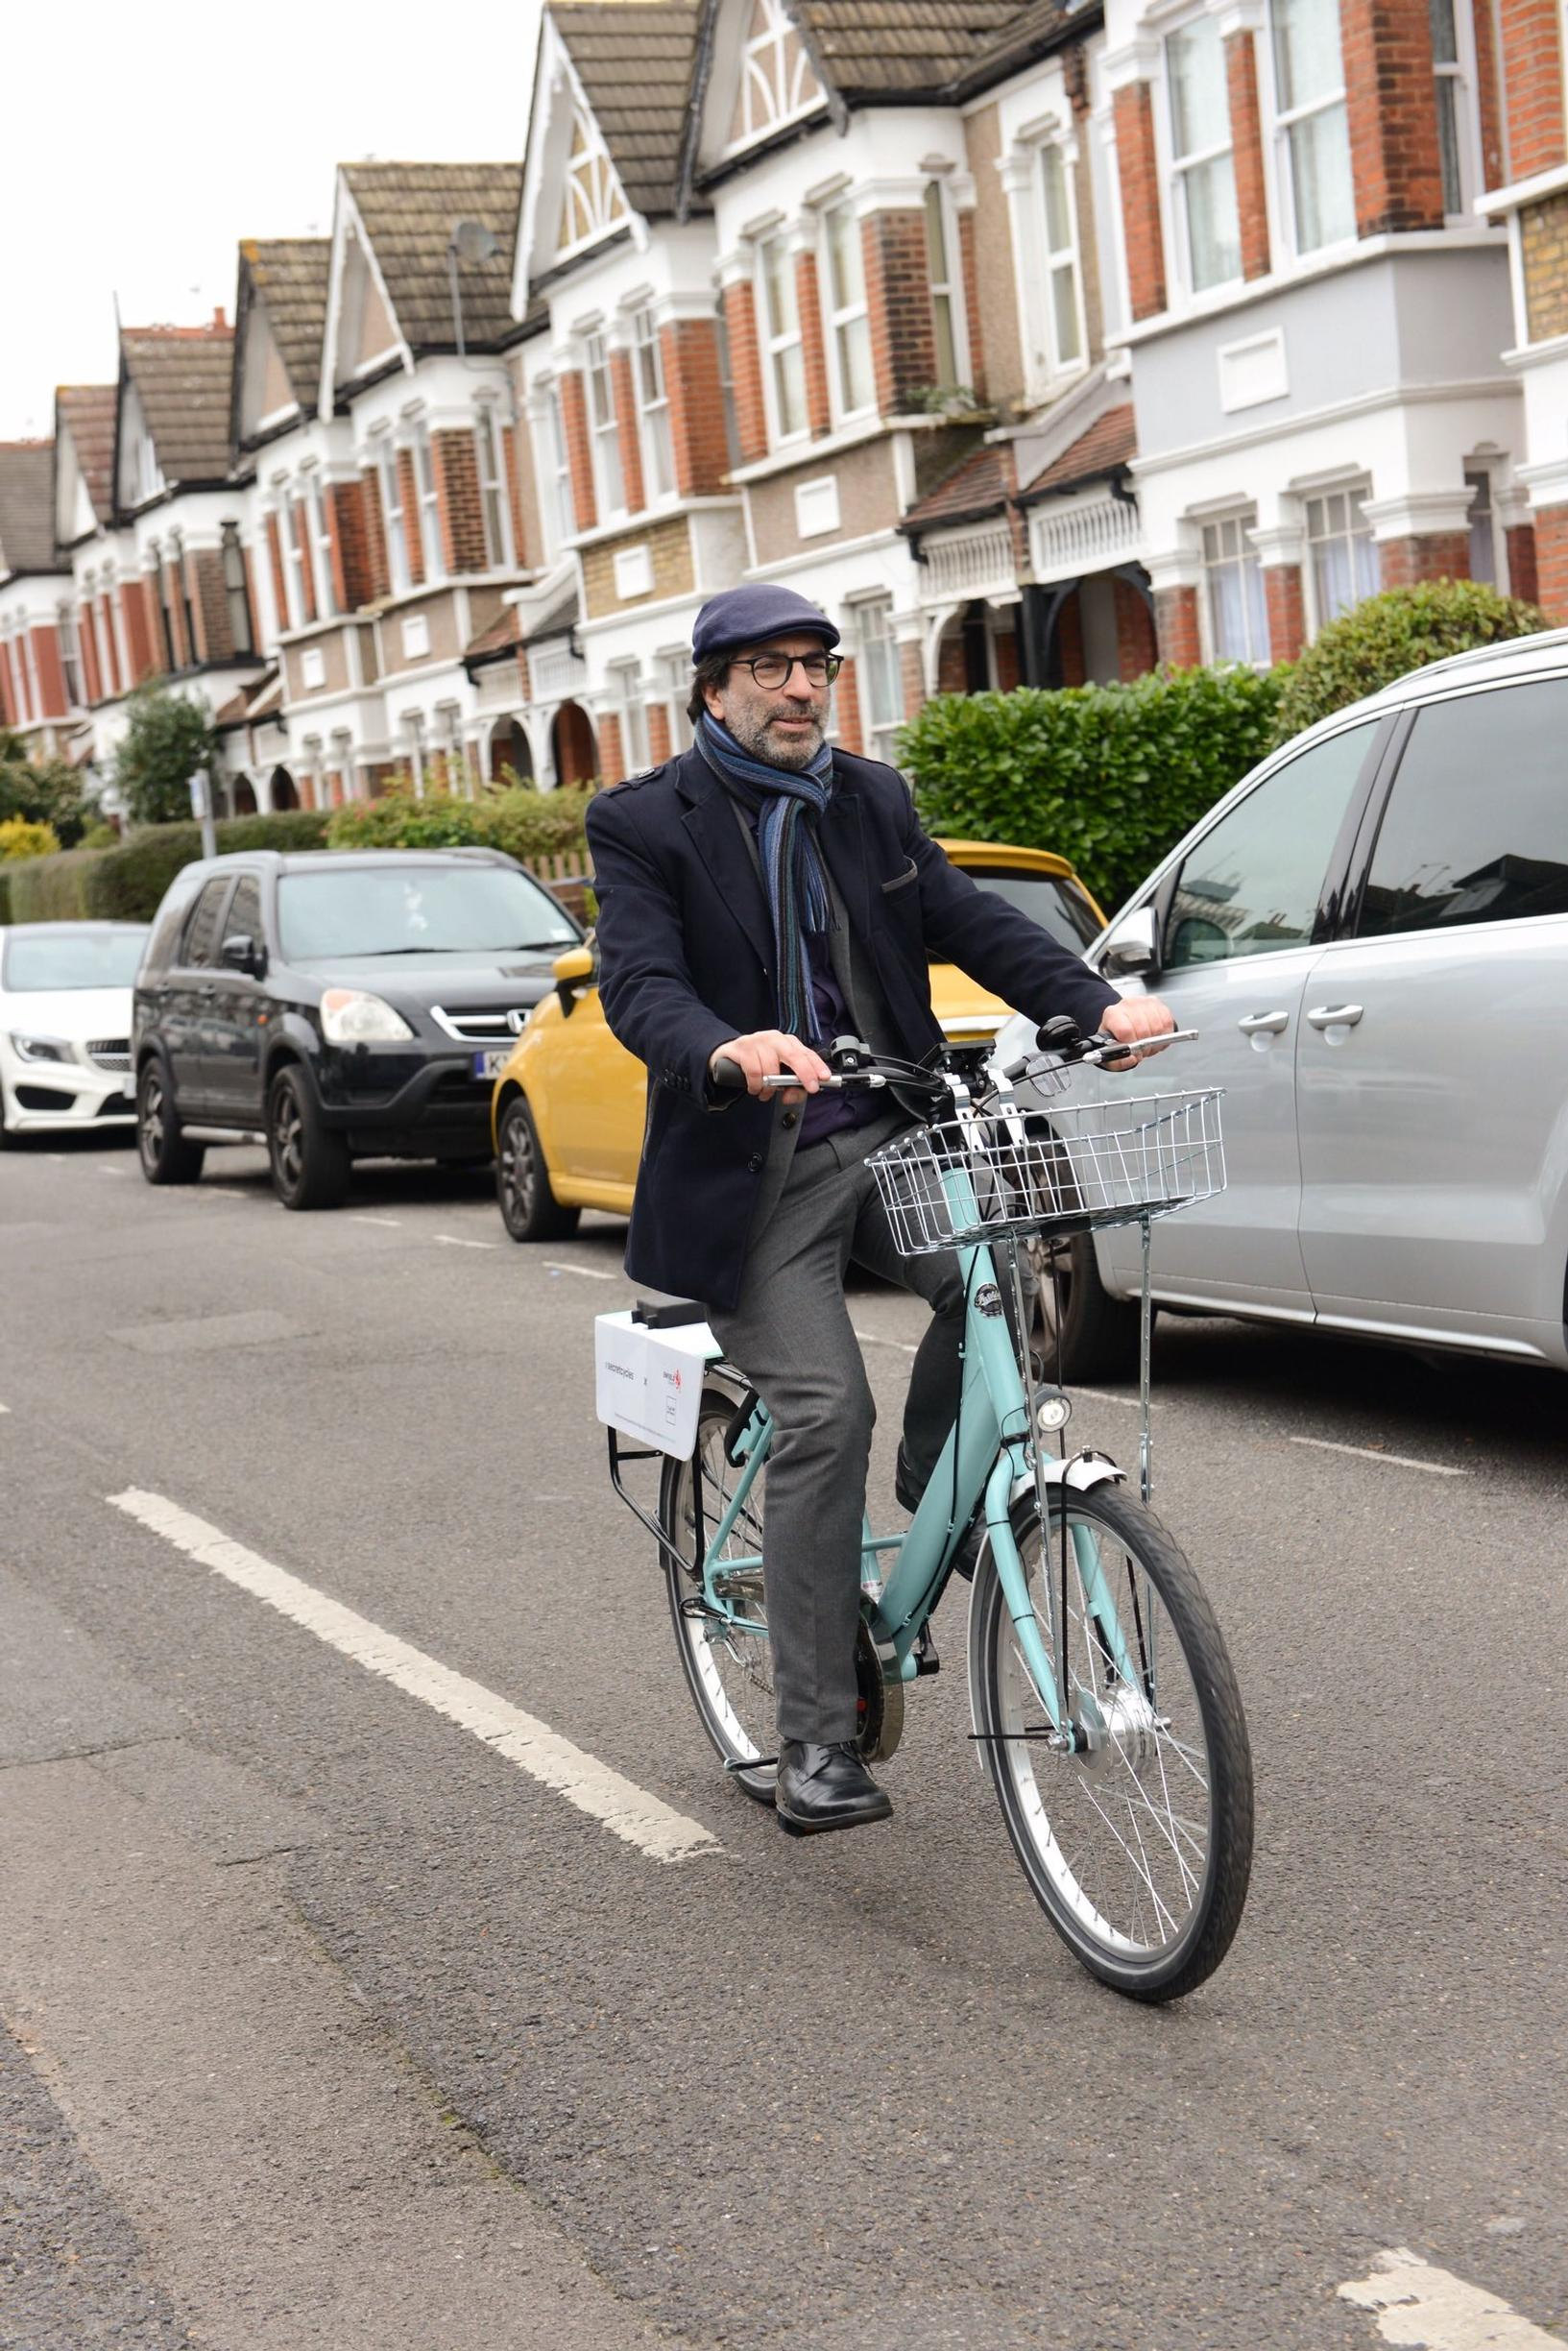 Daniel Anderson: People referred to me - and still do - as the idiot who built the cycle lanes. But I can live with that. If I didn't believe that it was the right thing to do I wouldn't have done it